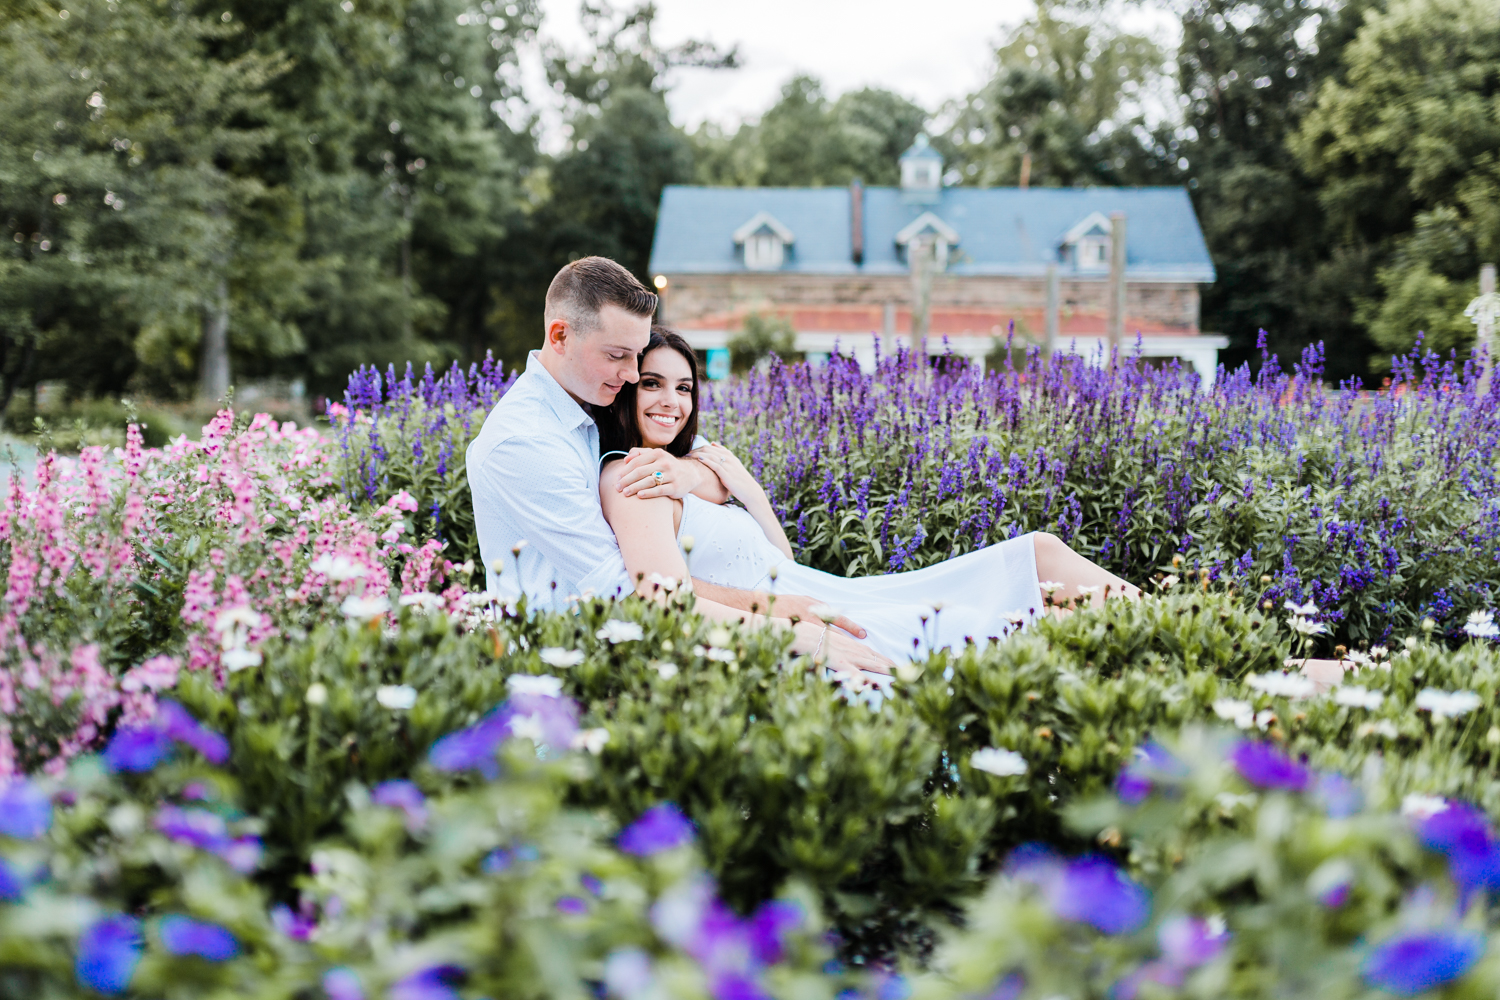 couple snuggling in wildflowers - best maryland engagement photographer